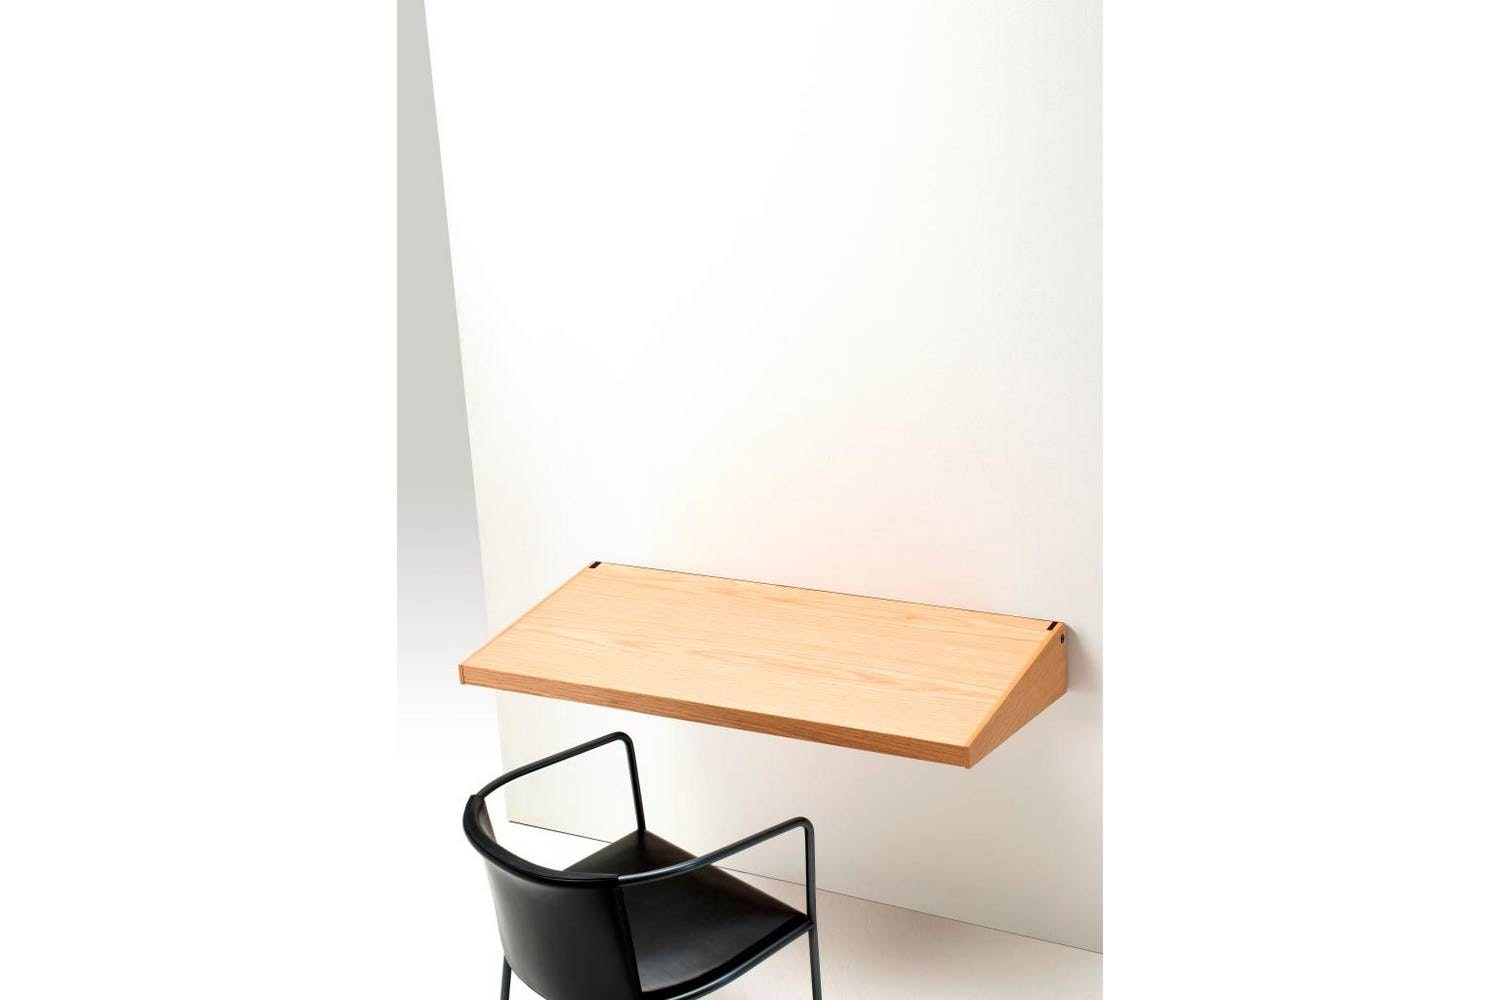 FJU Desk by KaschKasch for Living Divani